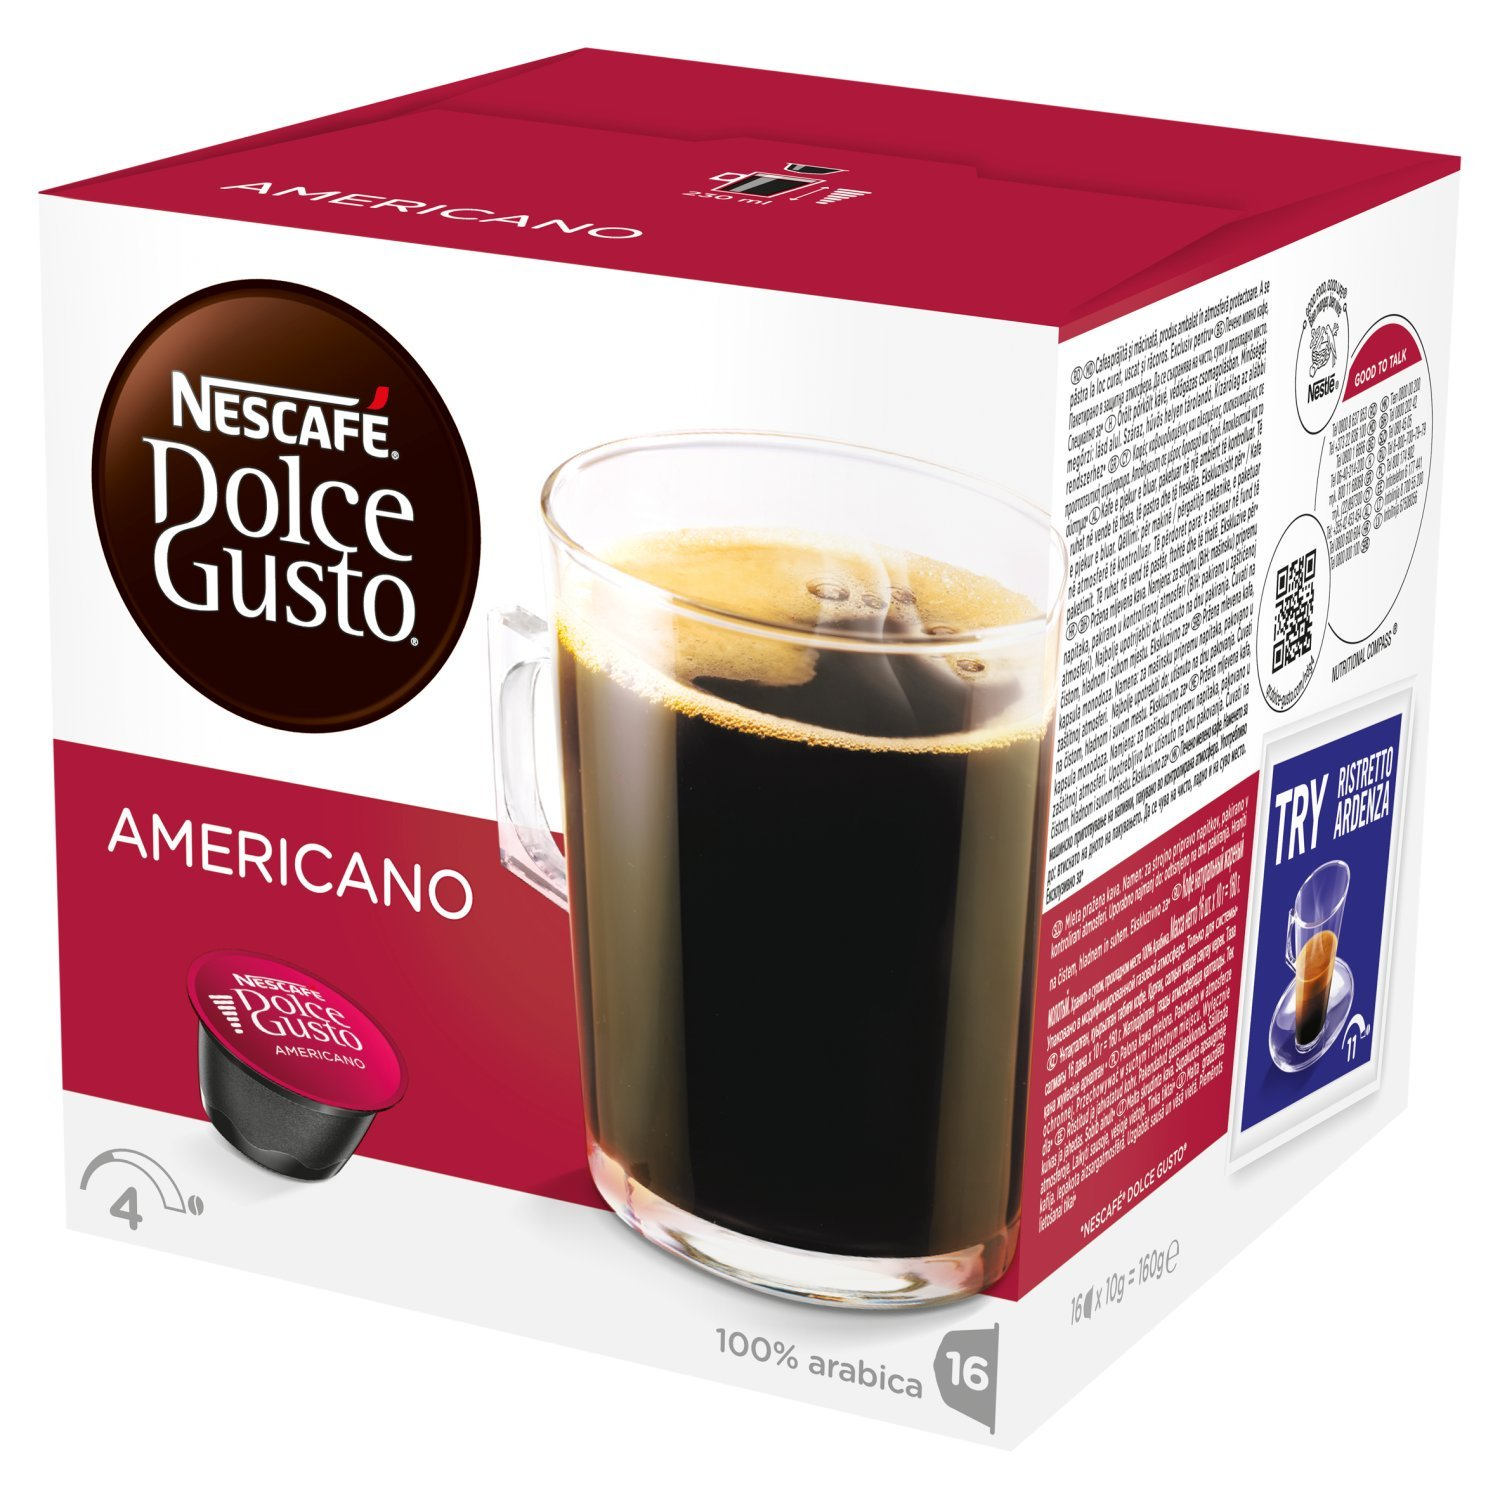 Nescafé Dolce Gusto Cafe au lait coffee pods and capsules (a floral notes, fruit notes, lychee, rose coffee with aromas of dried fruit and citrus fruit, fresh fruit and petals)